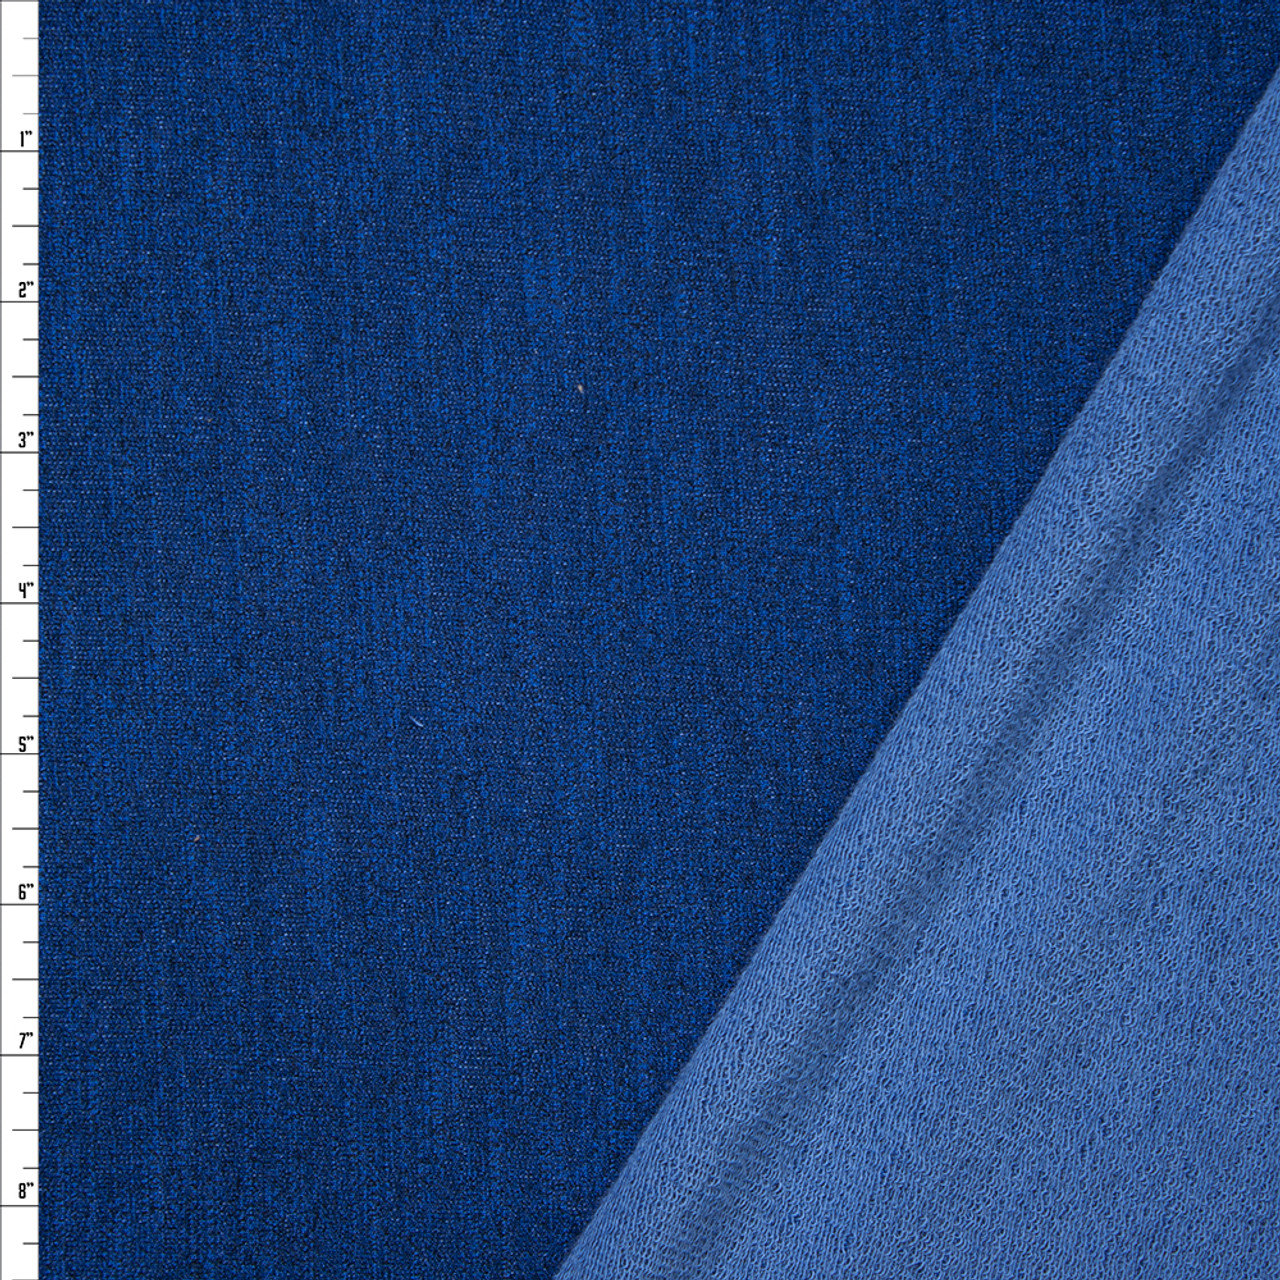 8c6225d7ca Cali Fabrics Royal Blue Heather Stretch French Terry Fabric by the Yard